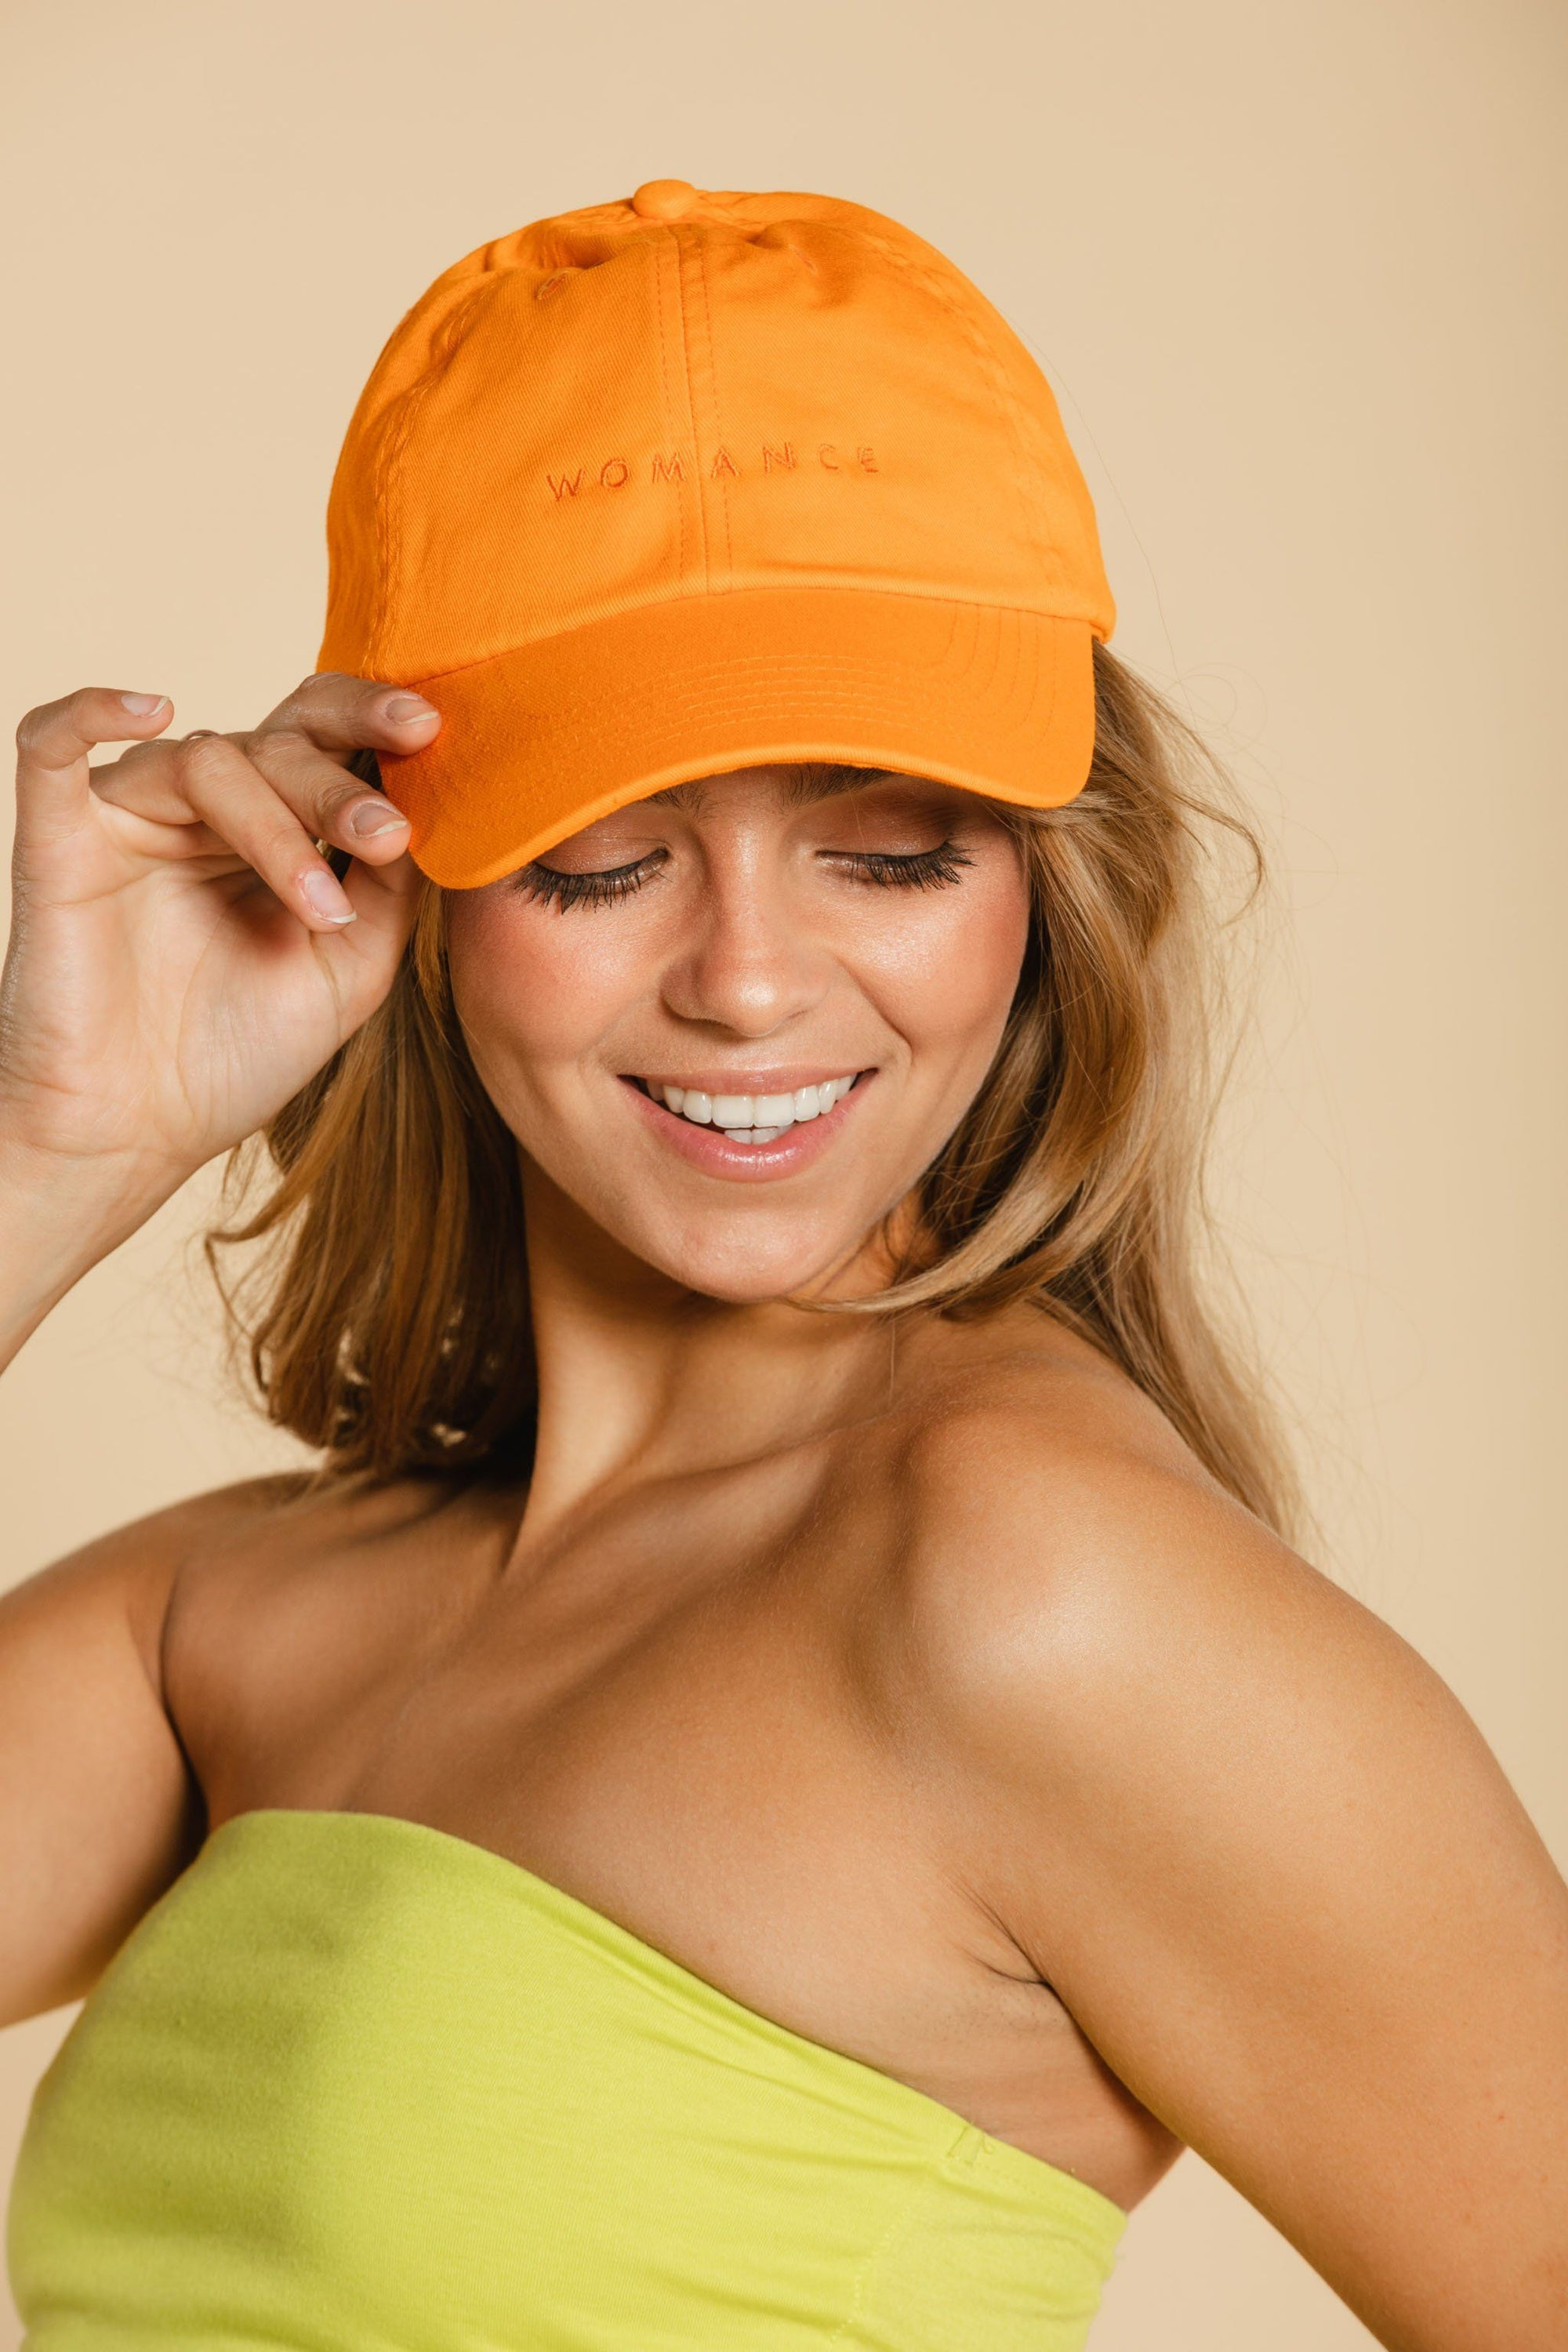 Casquette - Orange Casquette WOMANCE - Distribution